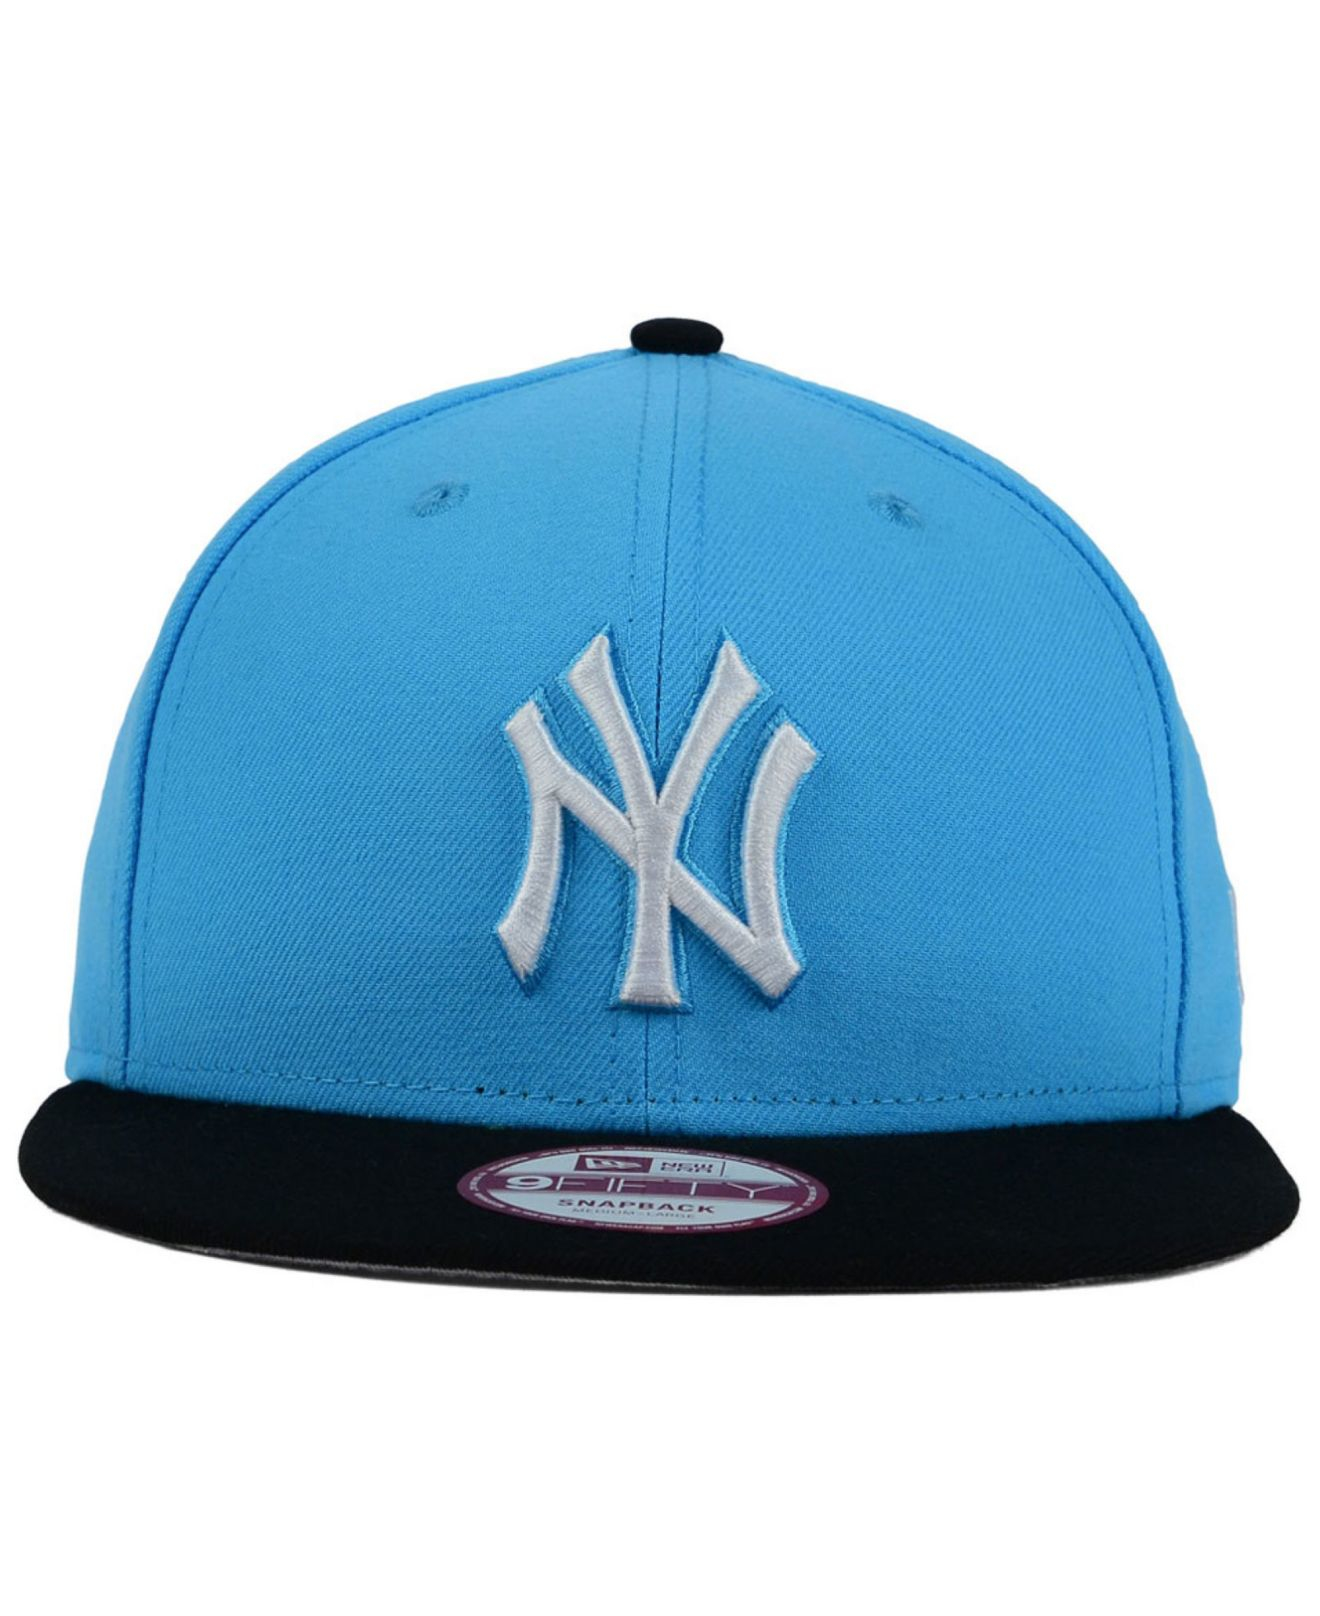 best service 4dbc2 36c31 KTZ New York Yankees The Queens 9fifty Snapback Cap in Blue for Men ...